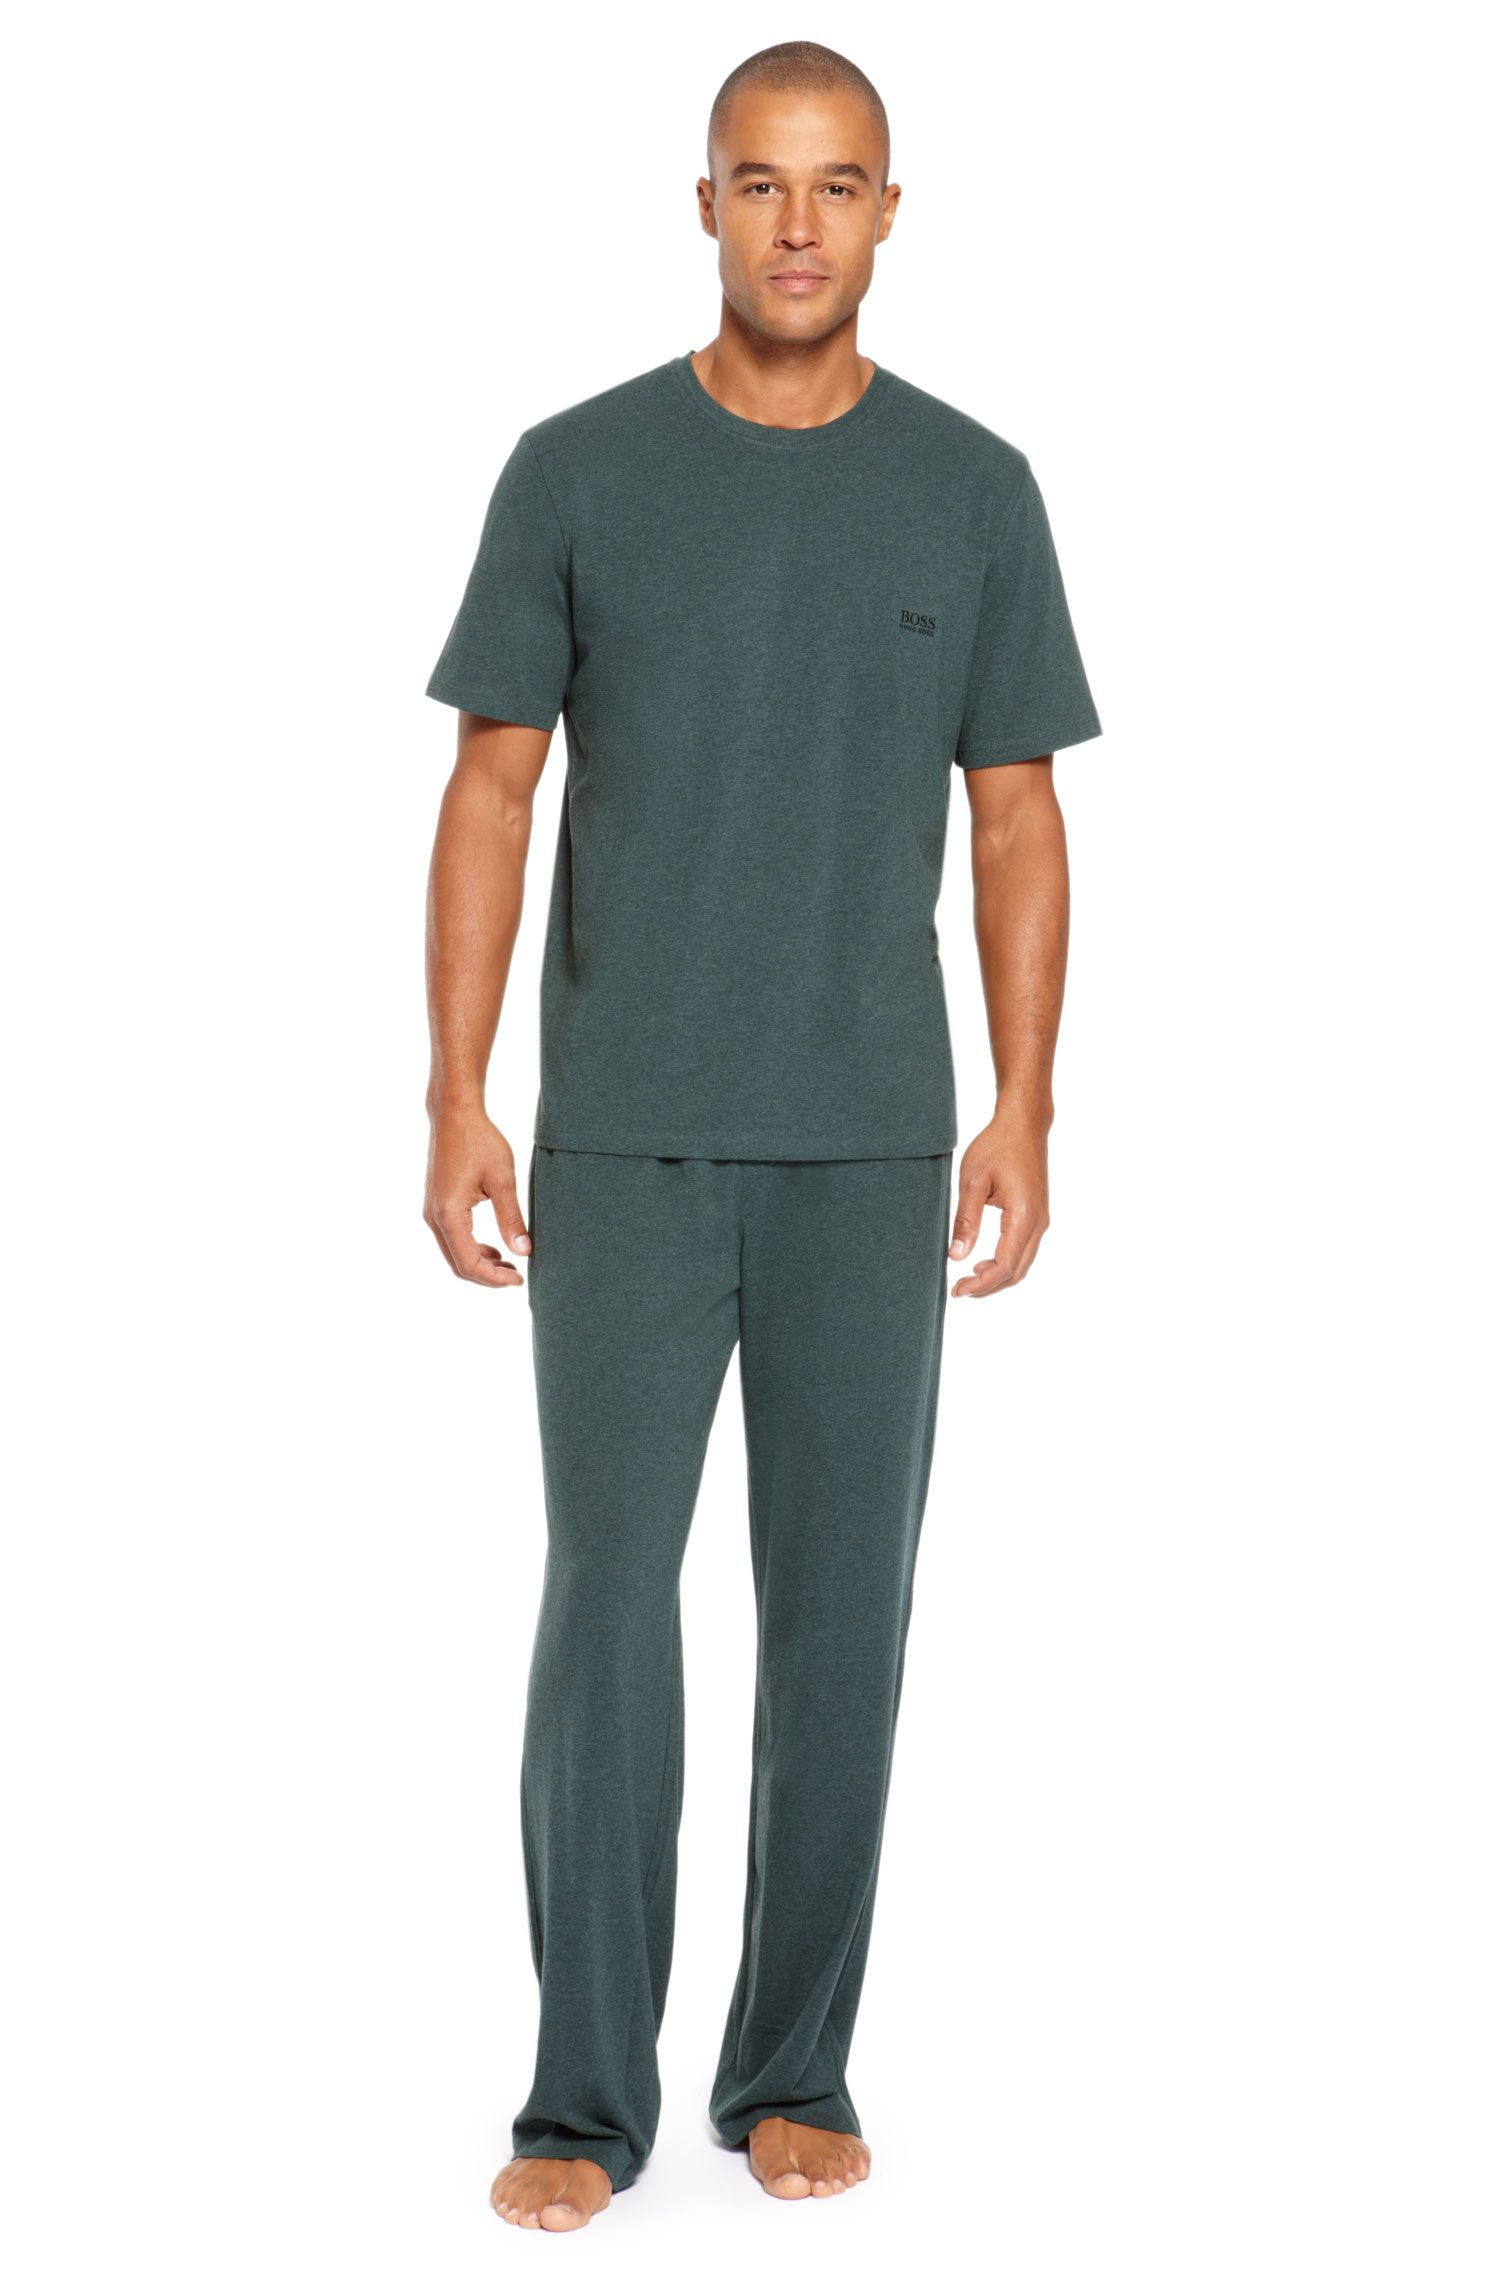 Cotton T-Shirt & Lounge Pants